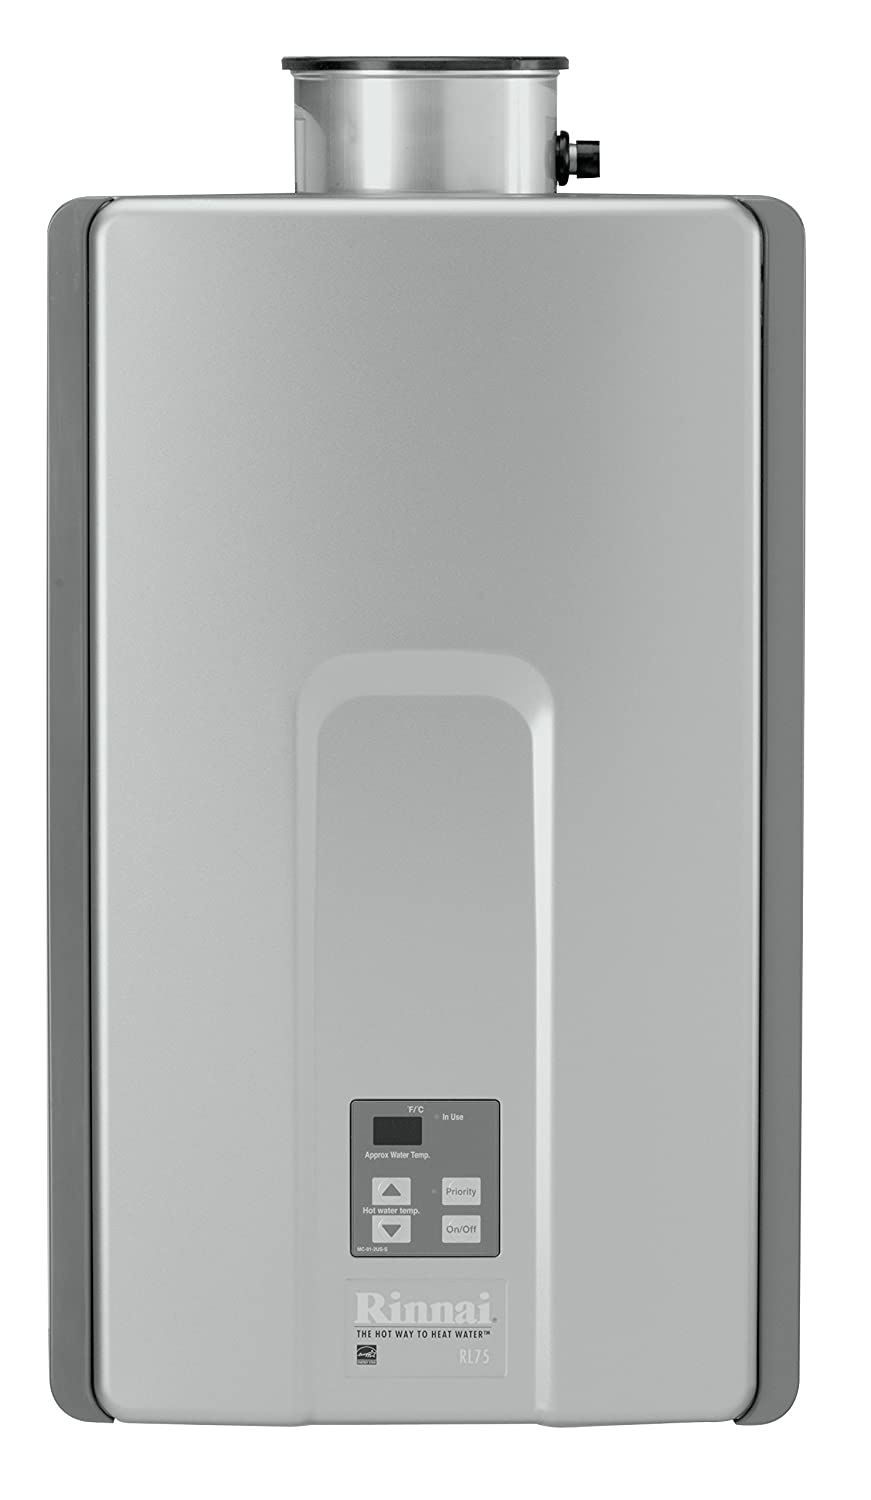 #3 Tankless Gas Water Heater -  Rinnai RL 75iN